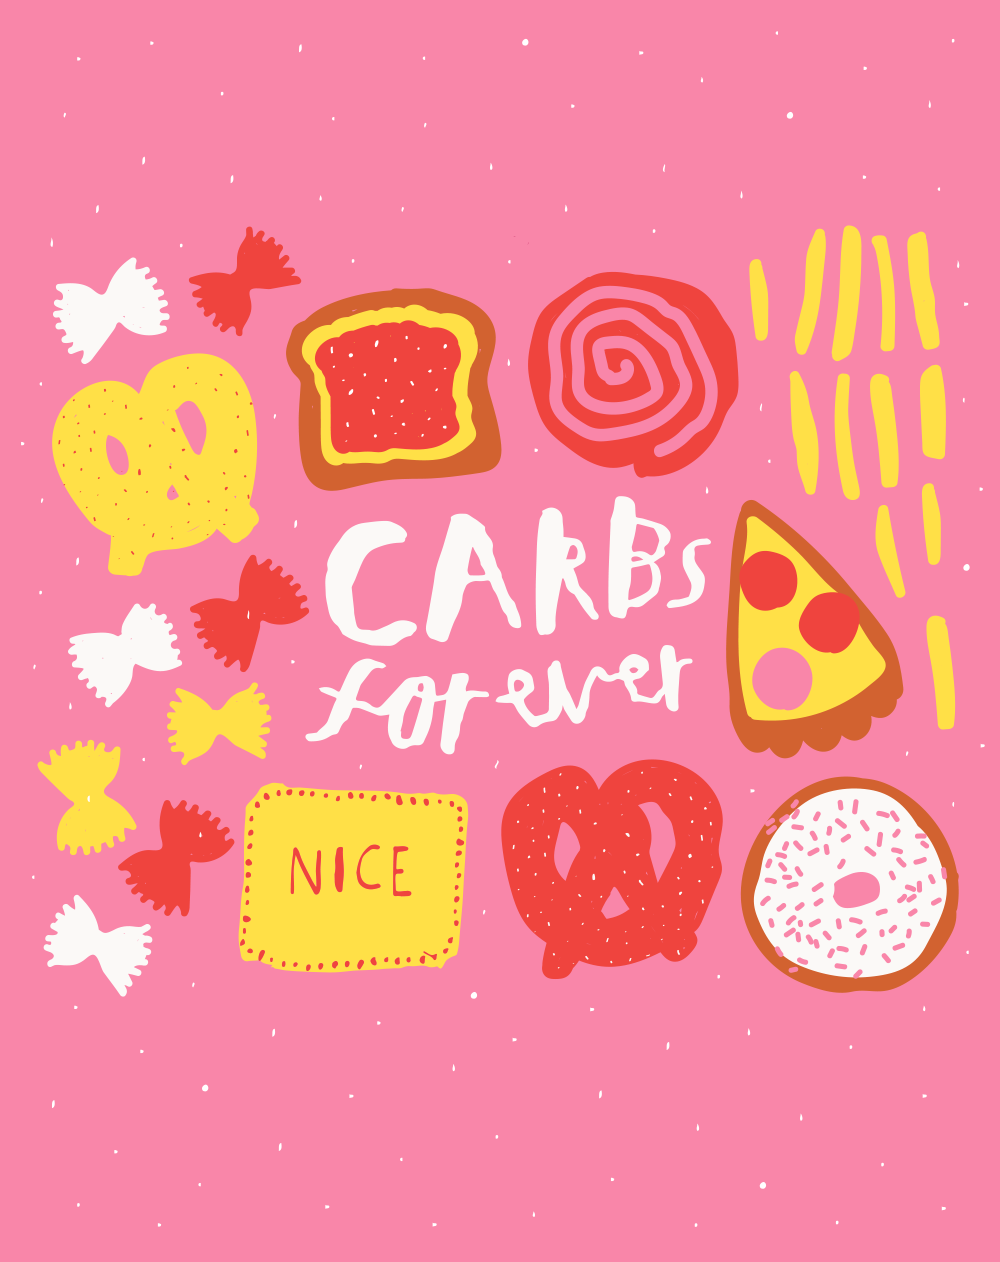 Carbs forever poster_Nikki Miles.png